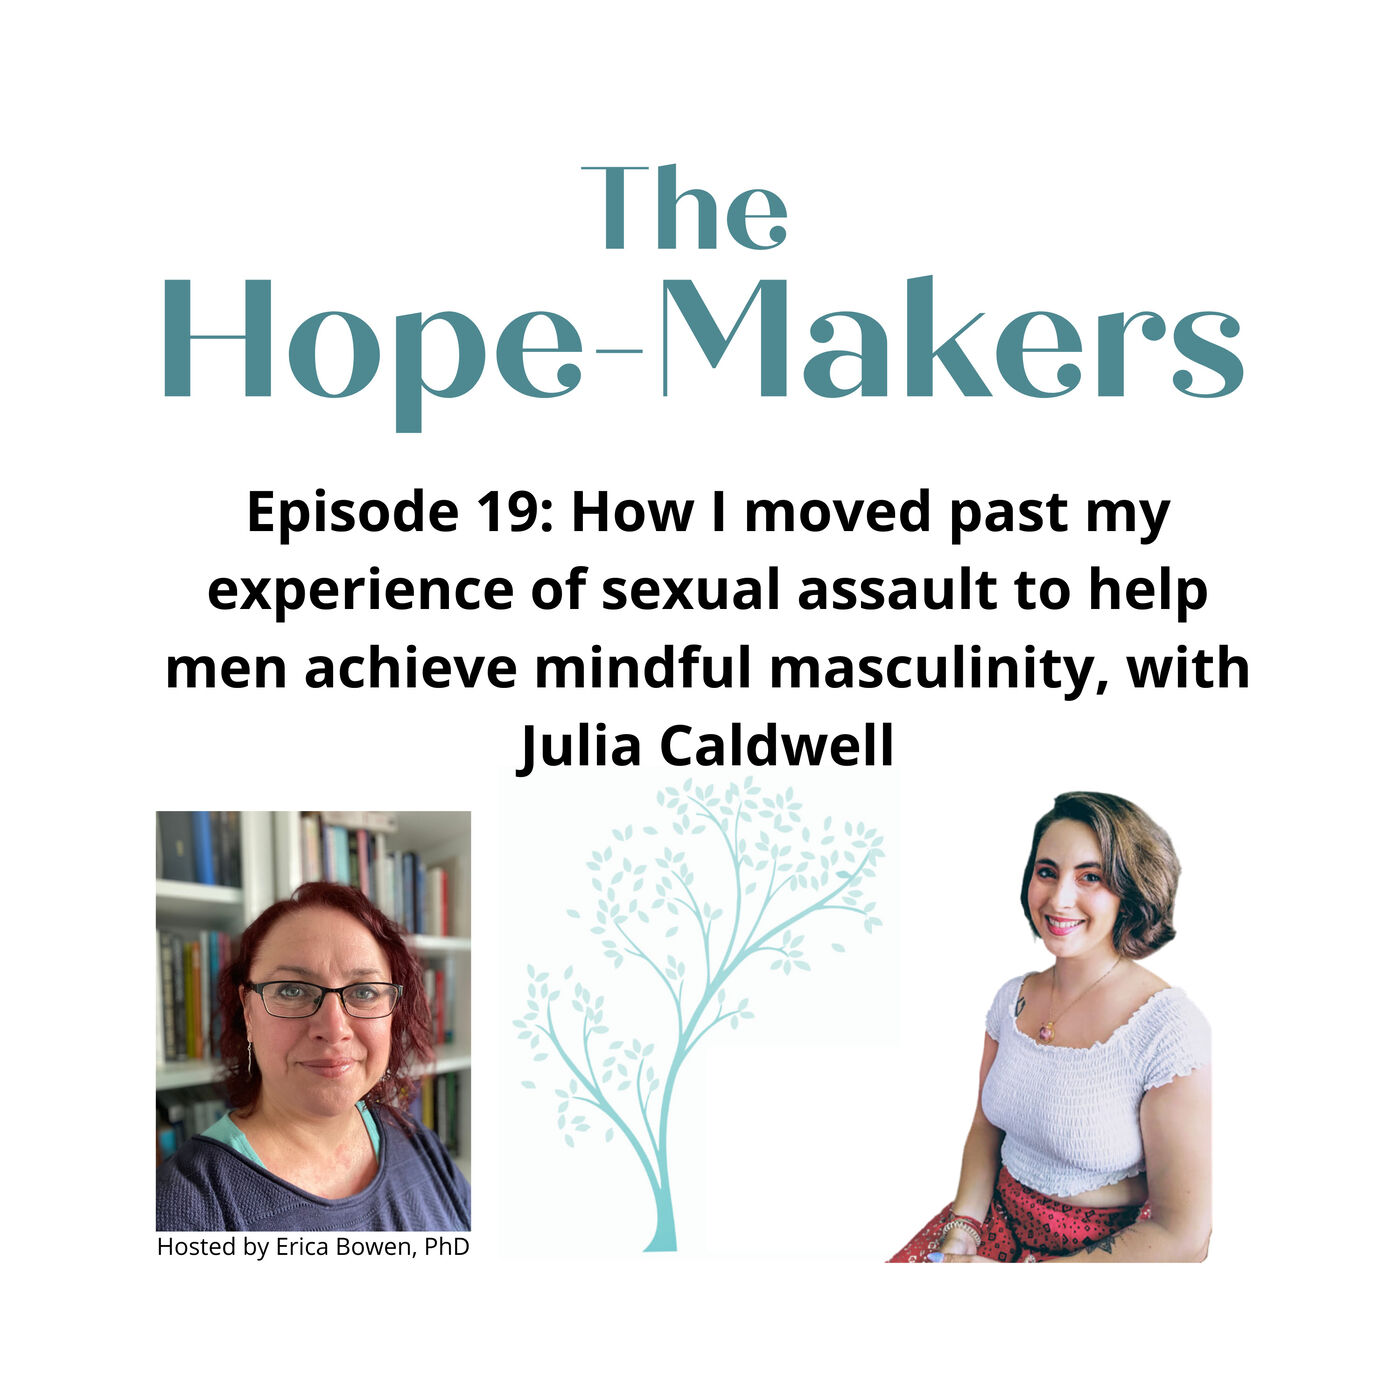 Episode 19. How I moved past my experience of sexual assault to help men achieve mindful masculinity